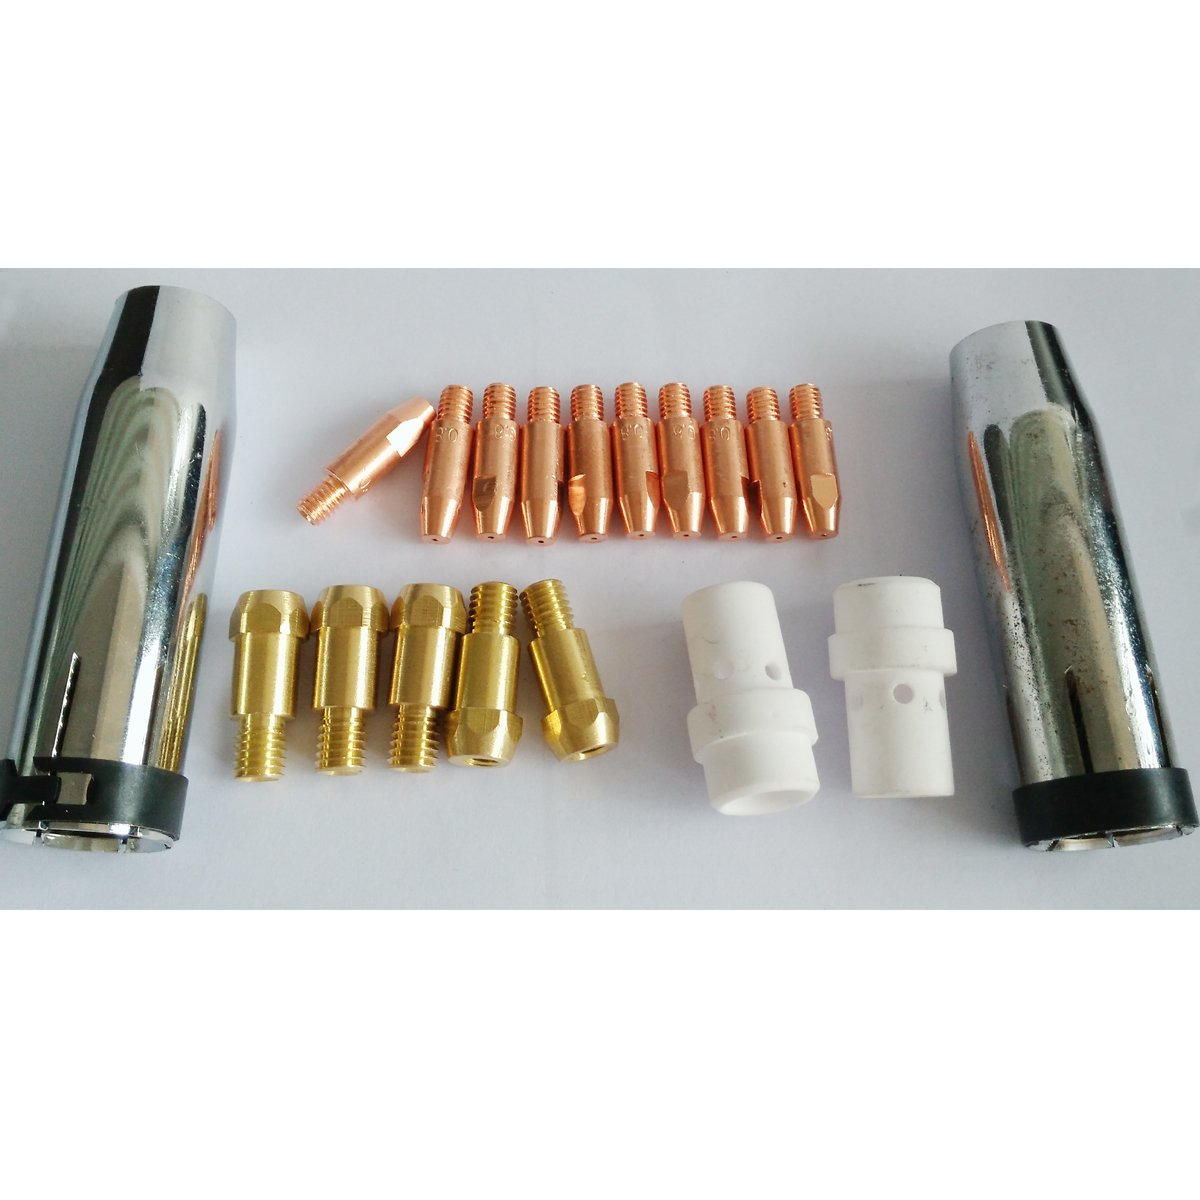 Warrior Torch Consumables Kit For Binzel MB36 36KD MIG Welding Torch Nozzles Gas Diffusers Contact Tips Holder 1.0mm Warrior Welding Supply